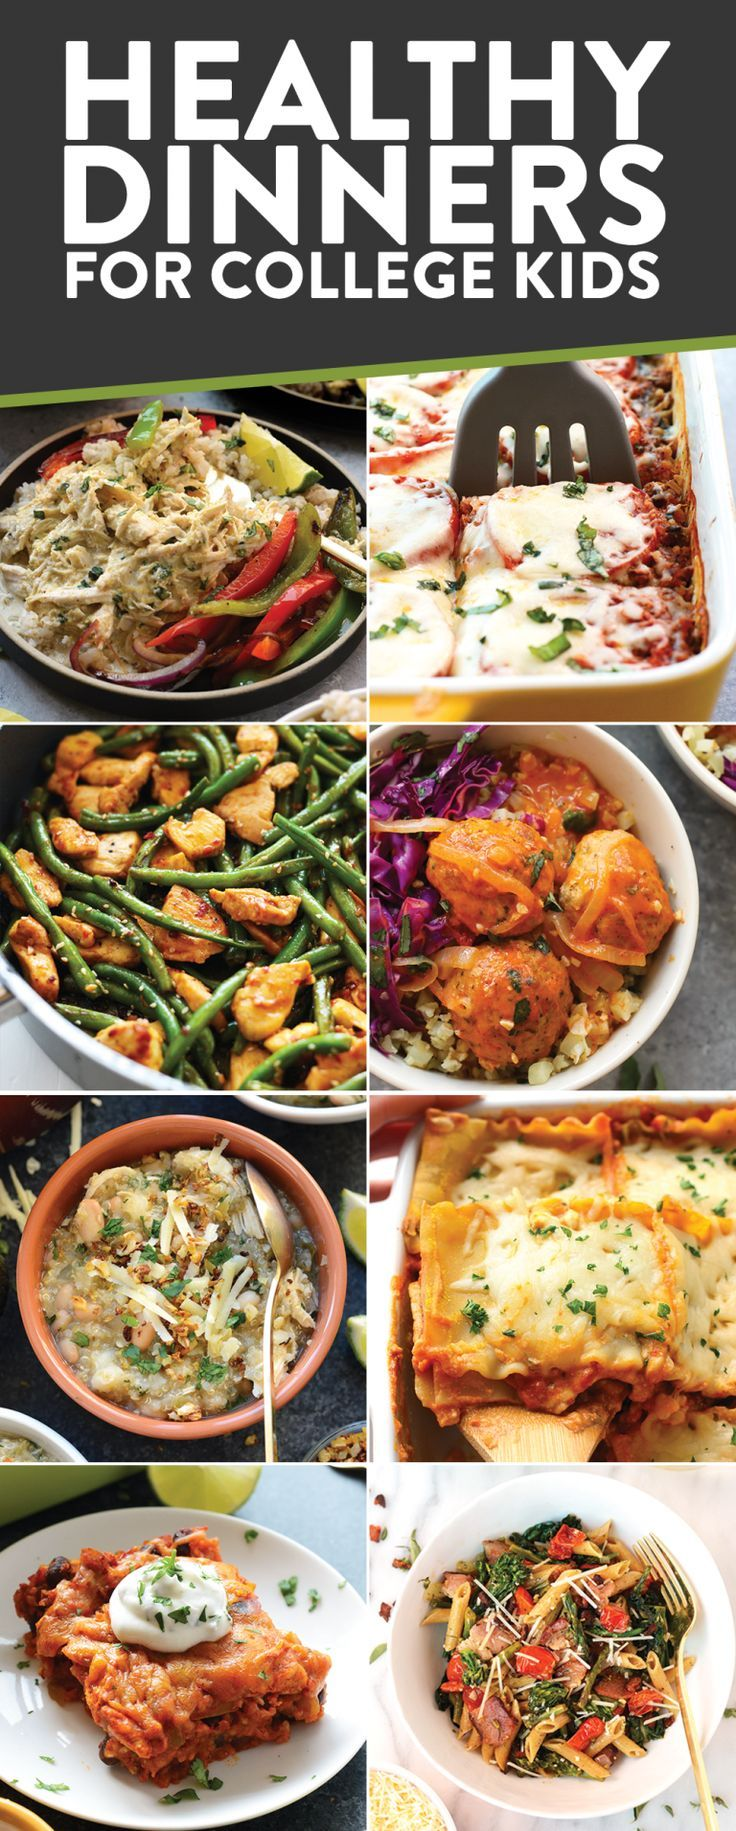 These dinner recipes are perfect for college students on a budget! Try them now! -